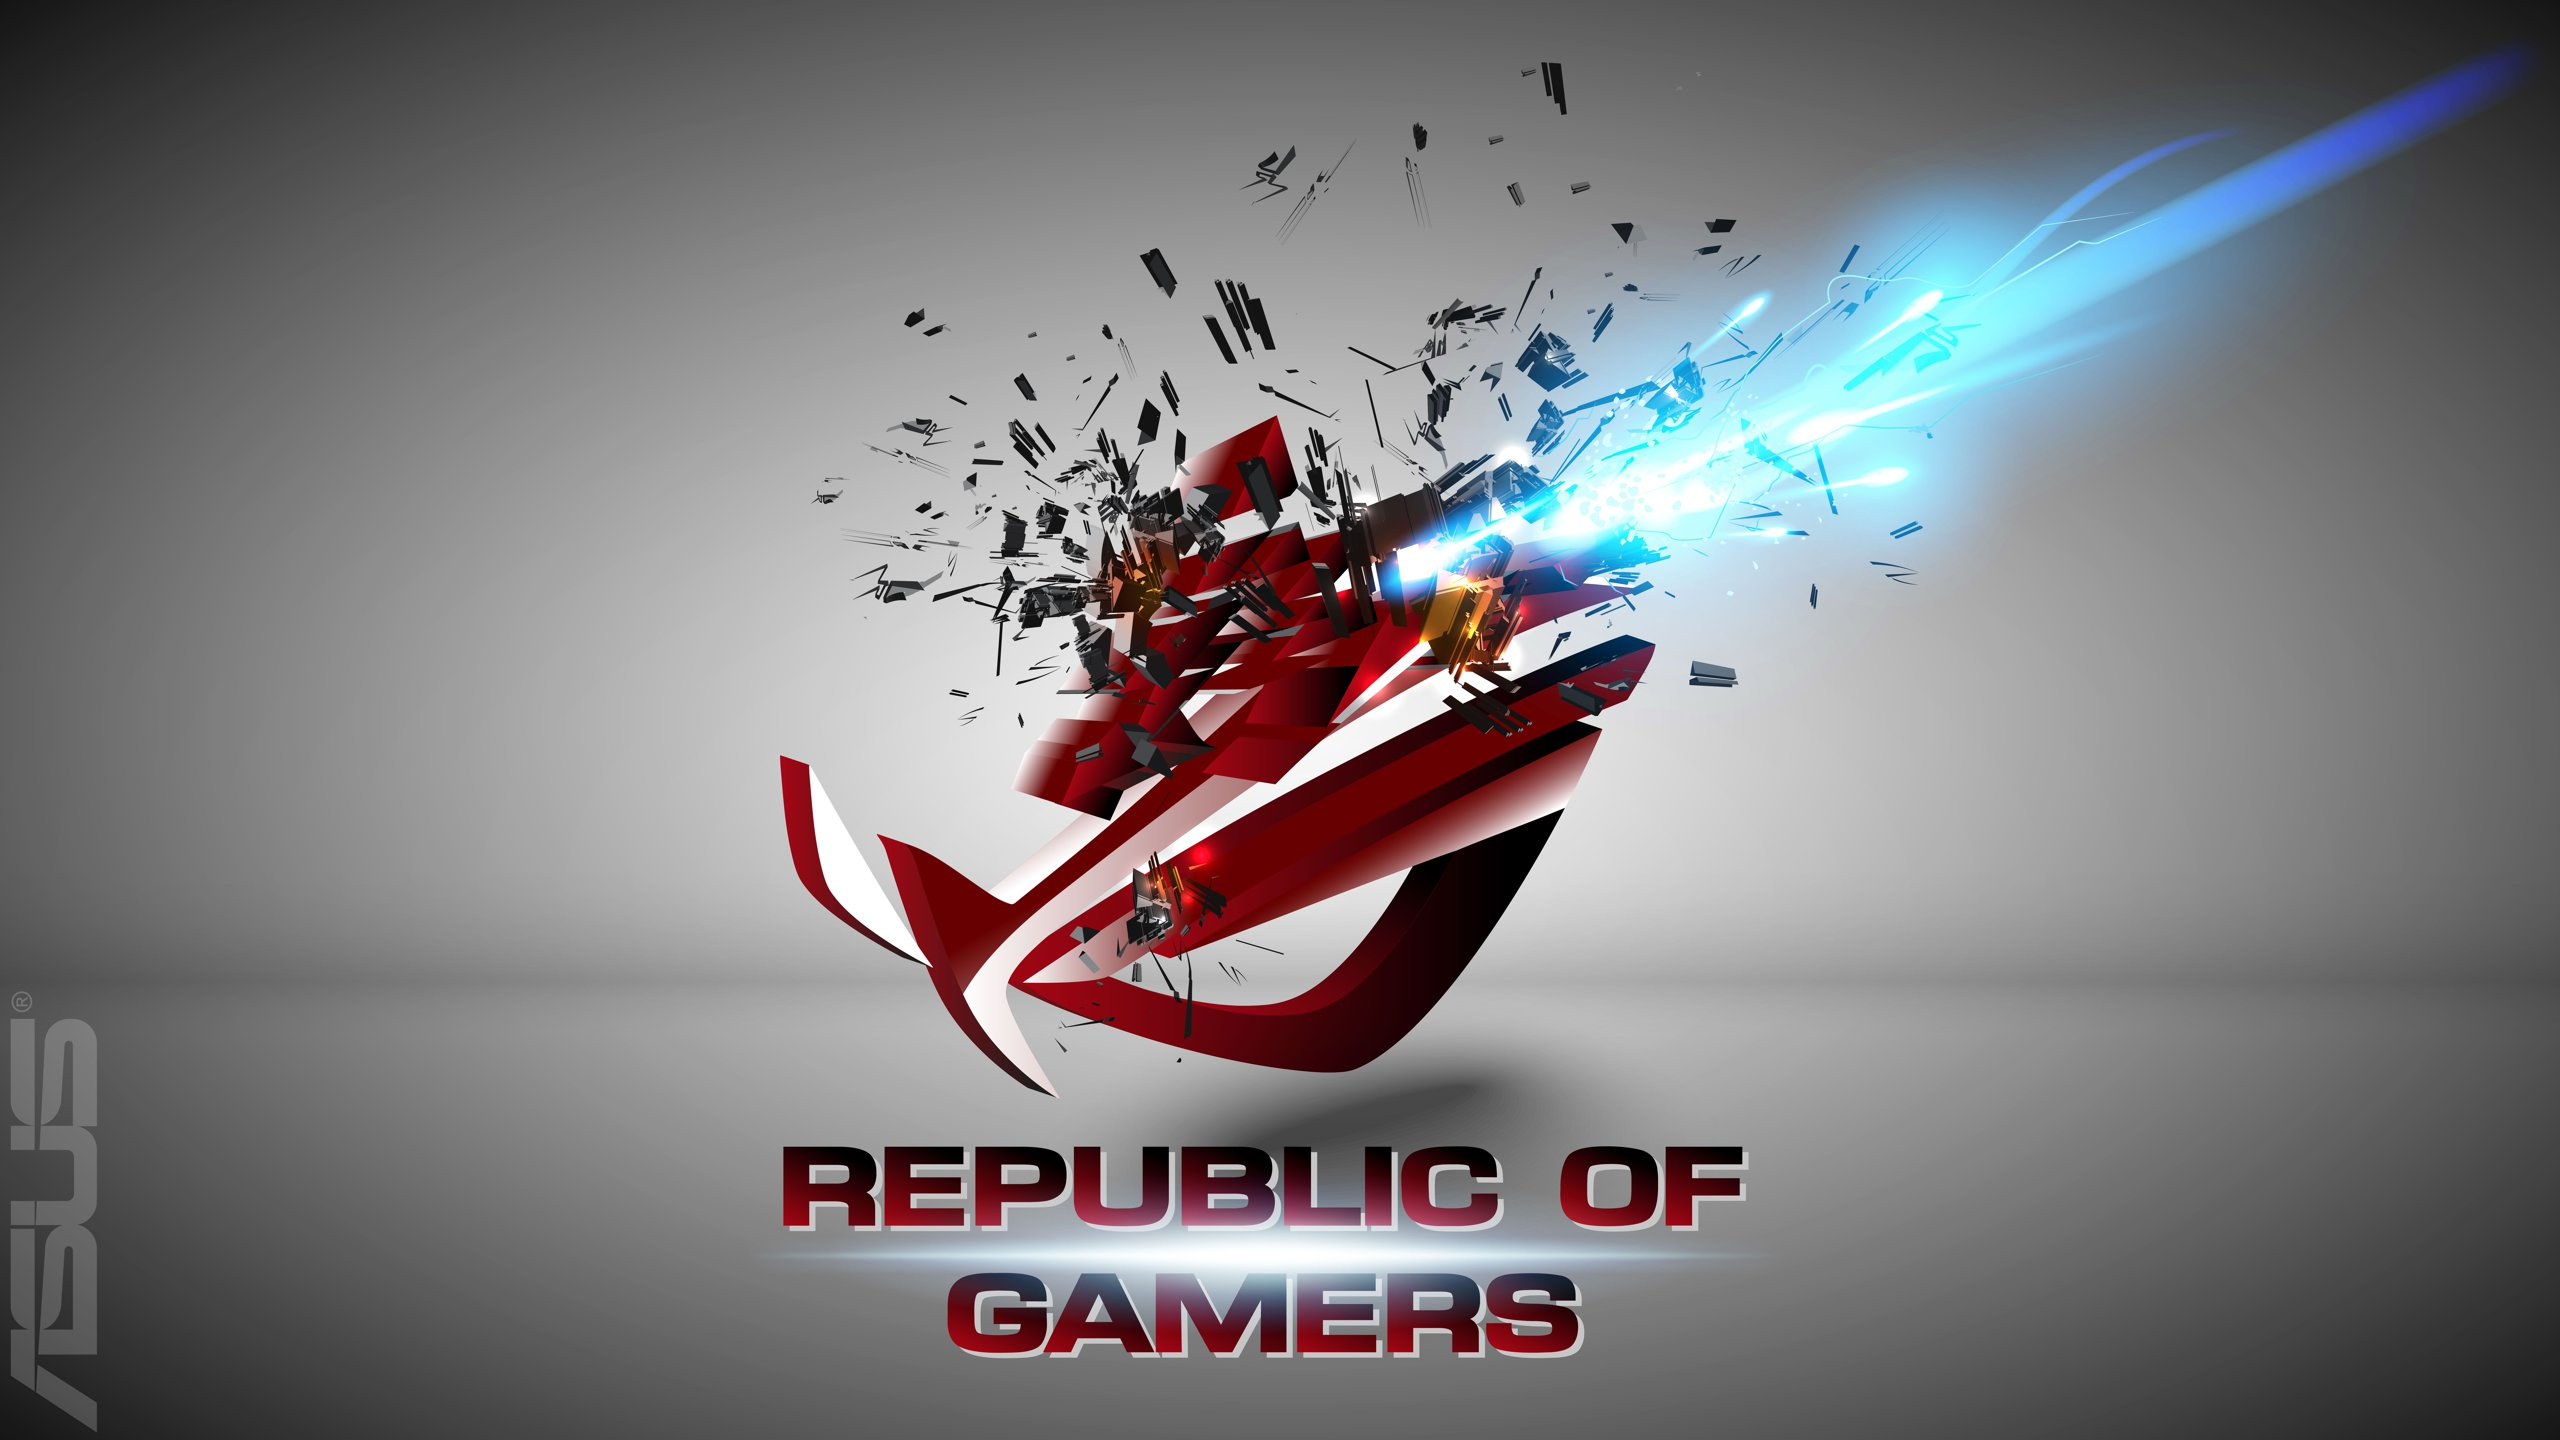 Asus Republic Of Gamers Wallpaper 1920x1080: ROG Wallpaper Collection 2013